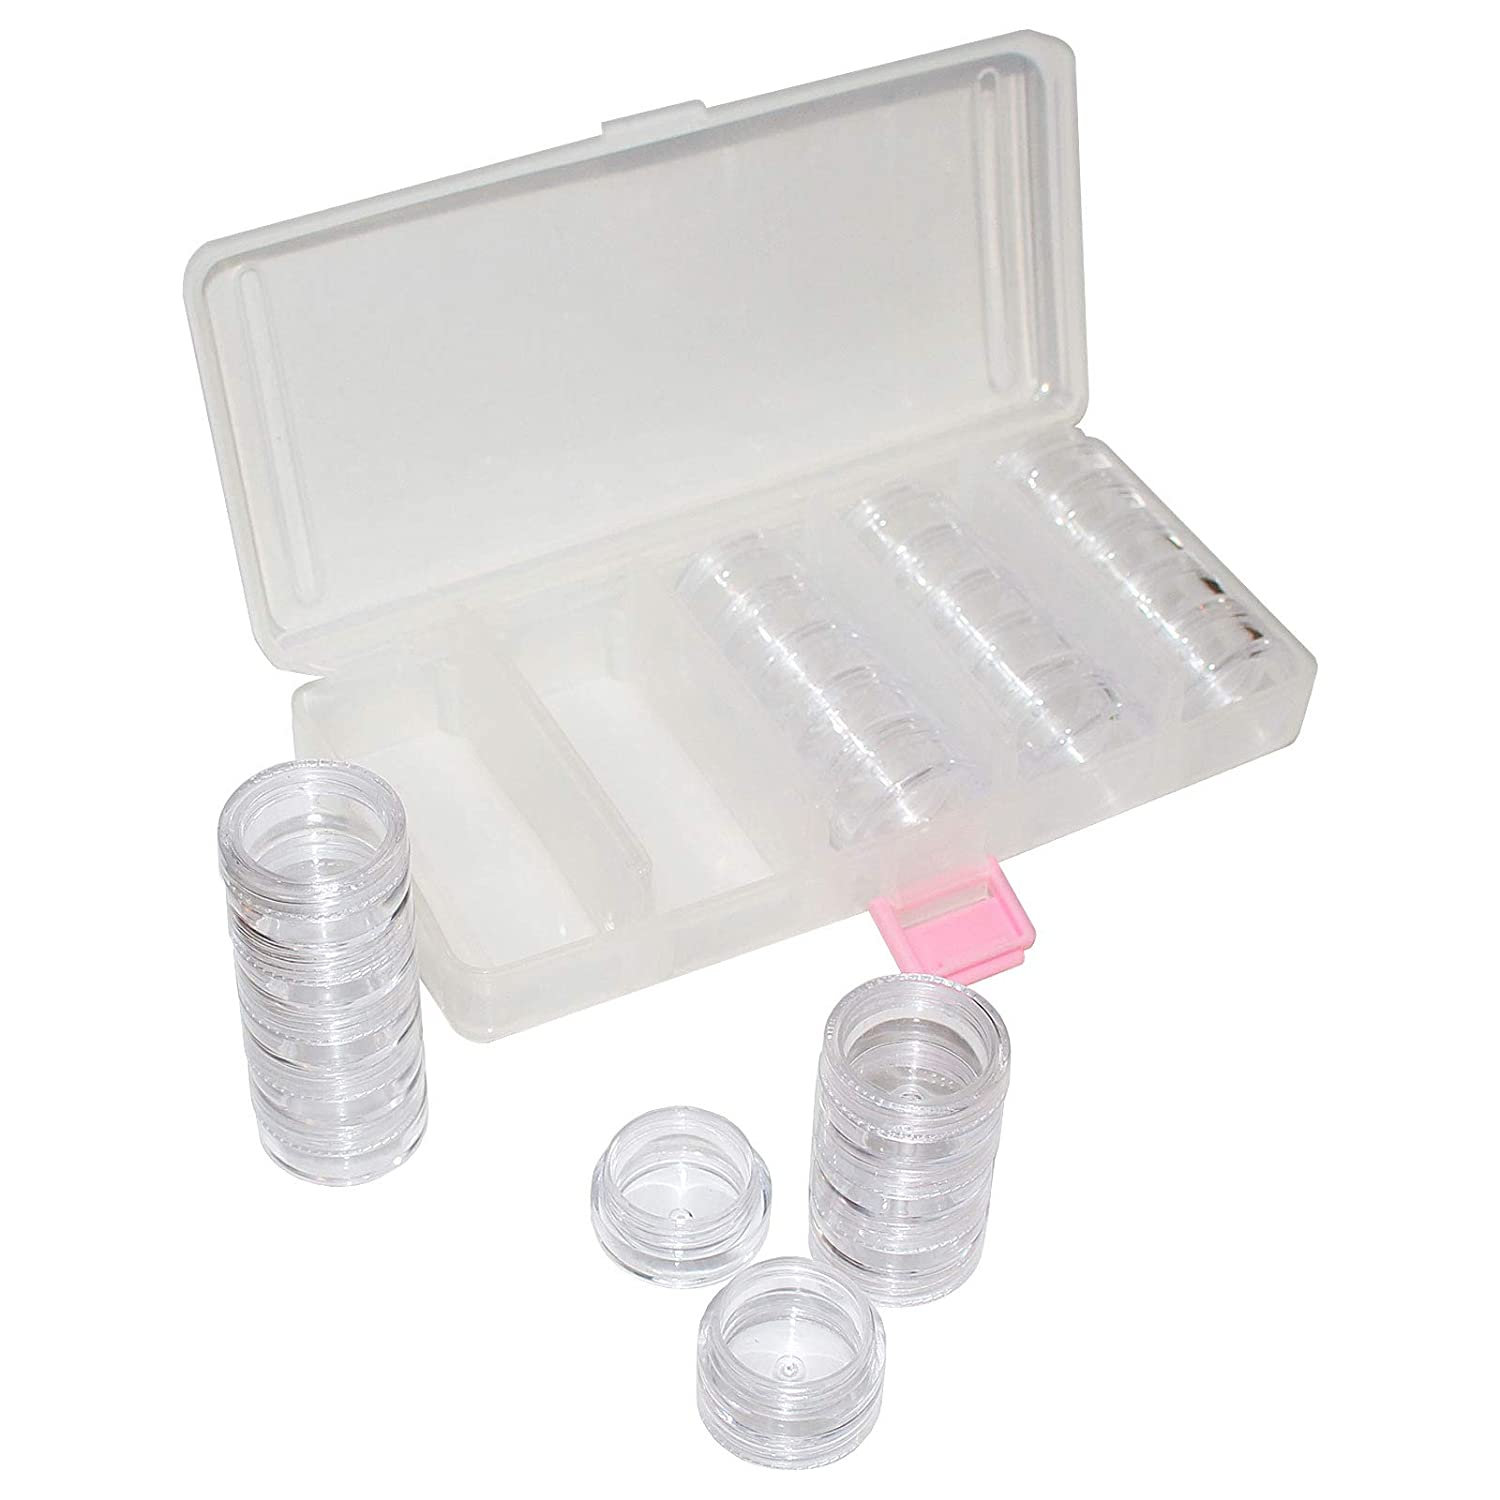 Bead Storage Organizer - 25 Piece (2cm)H Removable Pot Style Clear Plastic Divider Containers (19 x 9cm) For Storing Seed Beads, Nail Art Glitter, Cosmetics, DIY Art/Craft and Jewelery Findings Kurtzy